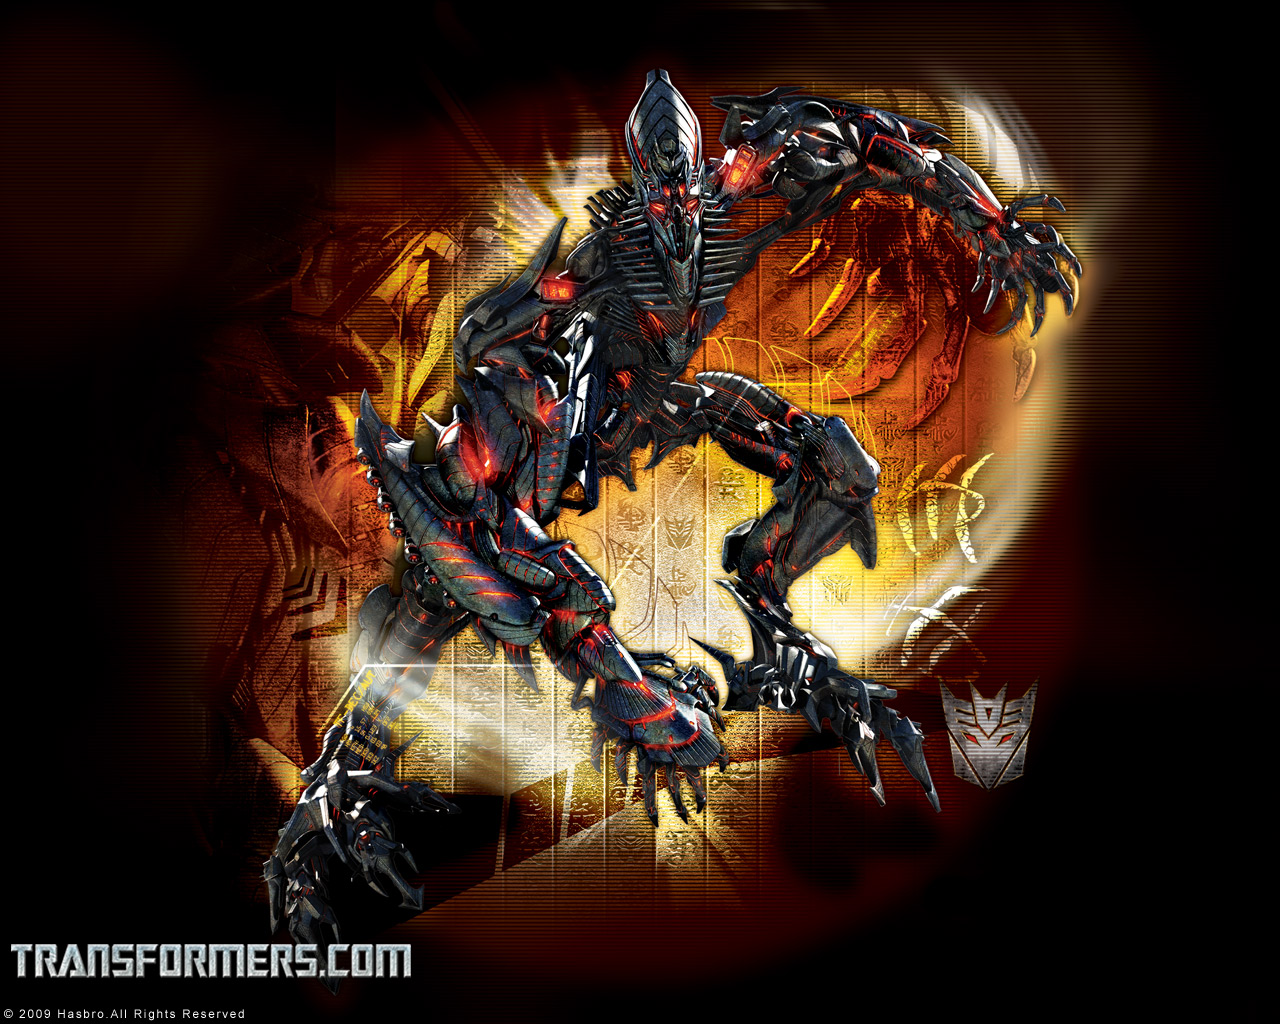 TRANSFORMERS WALLPAPER THE FALLENWallpapersHasbro 1280x1024